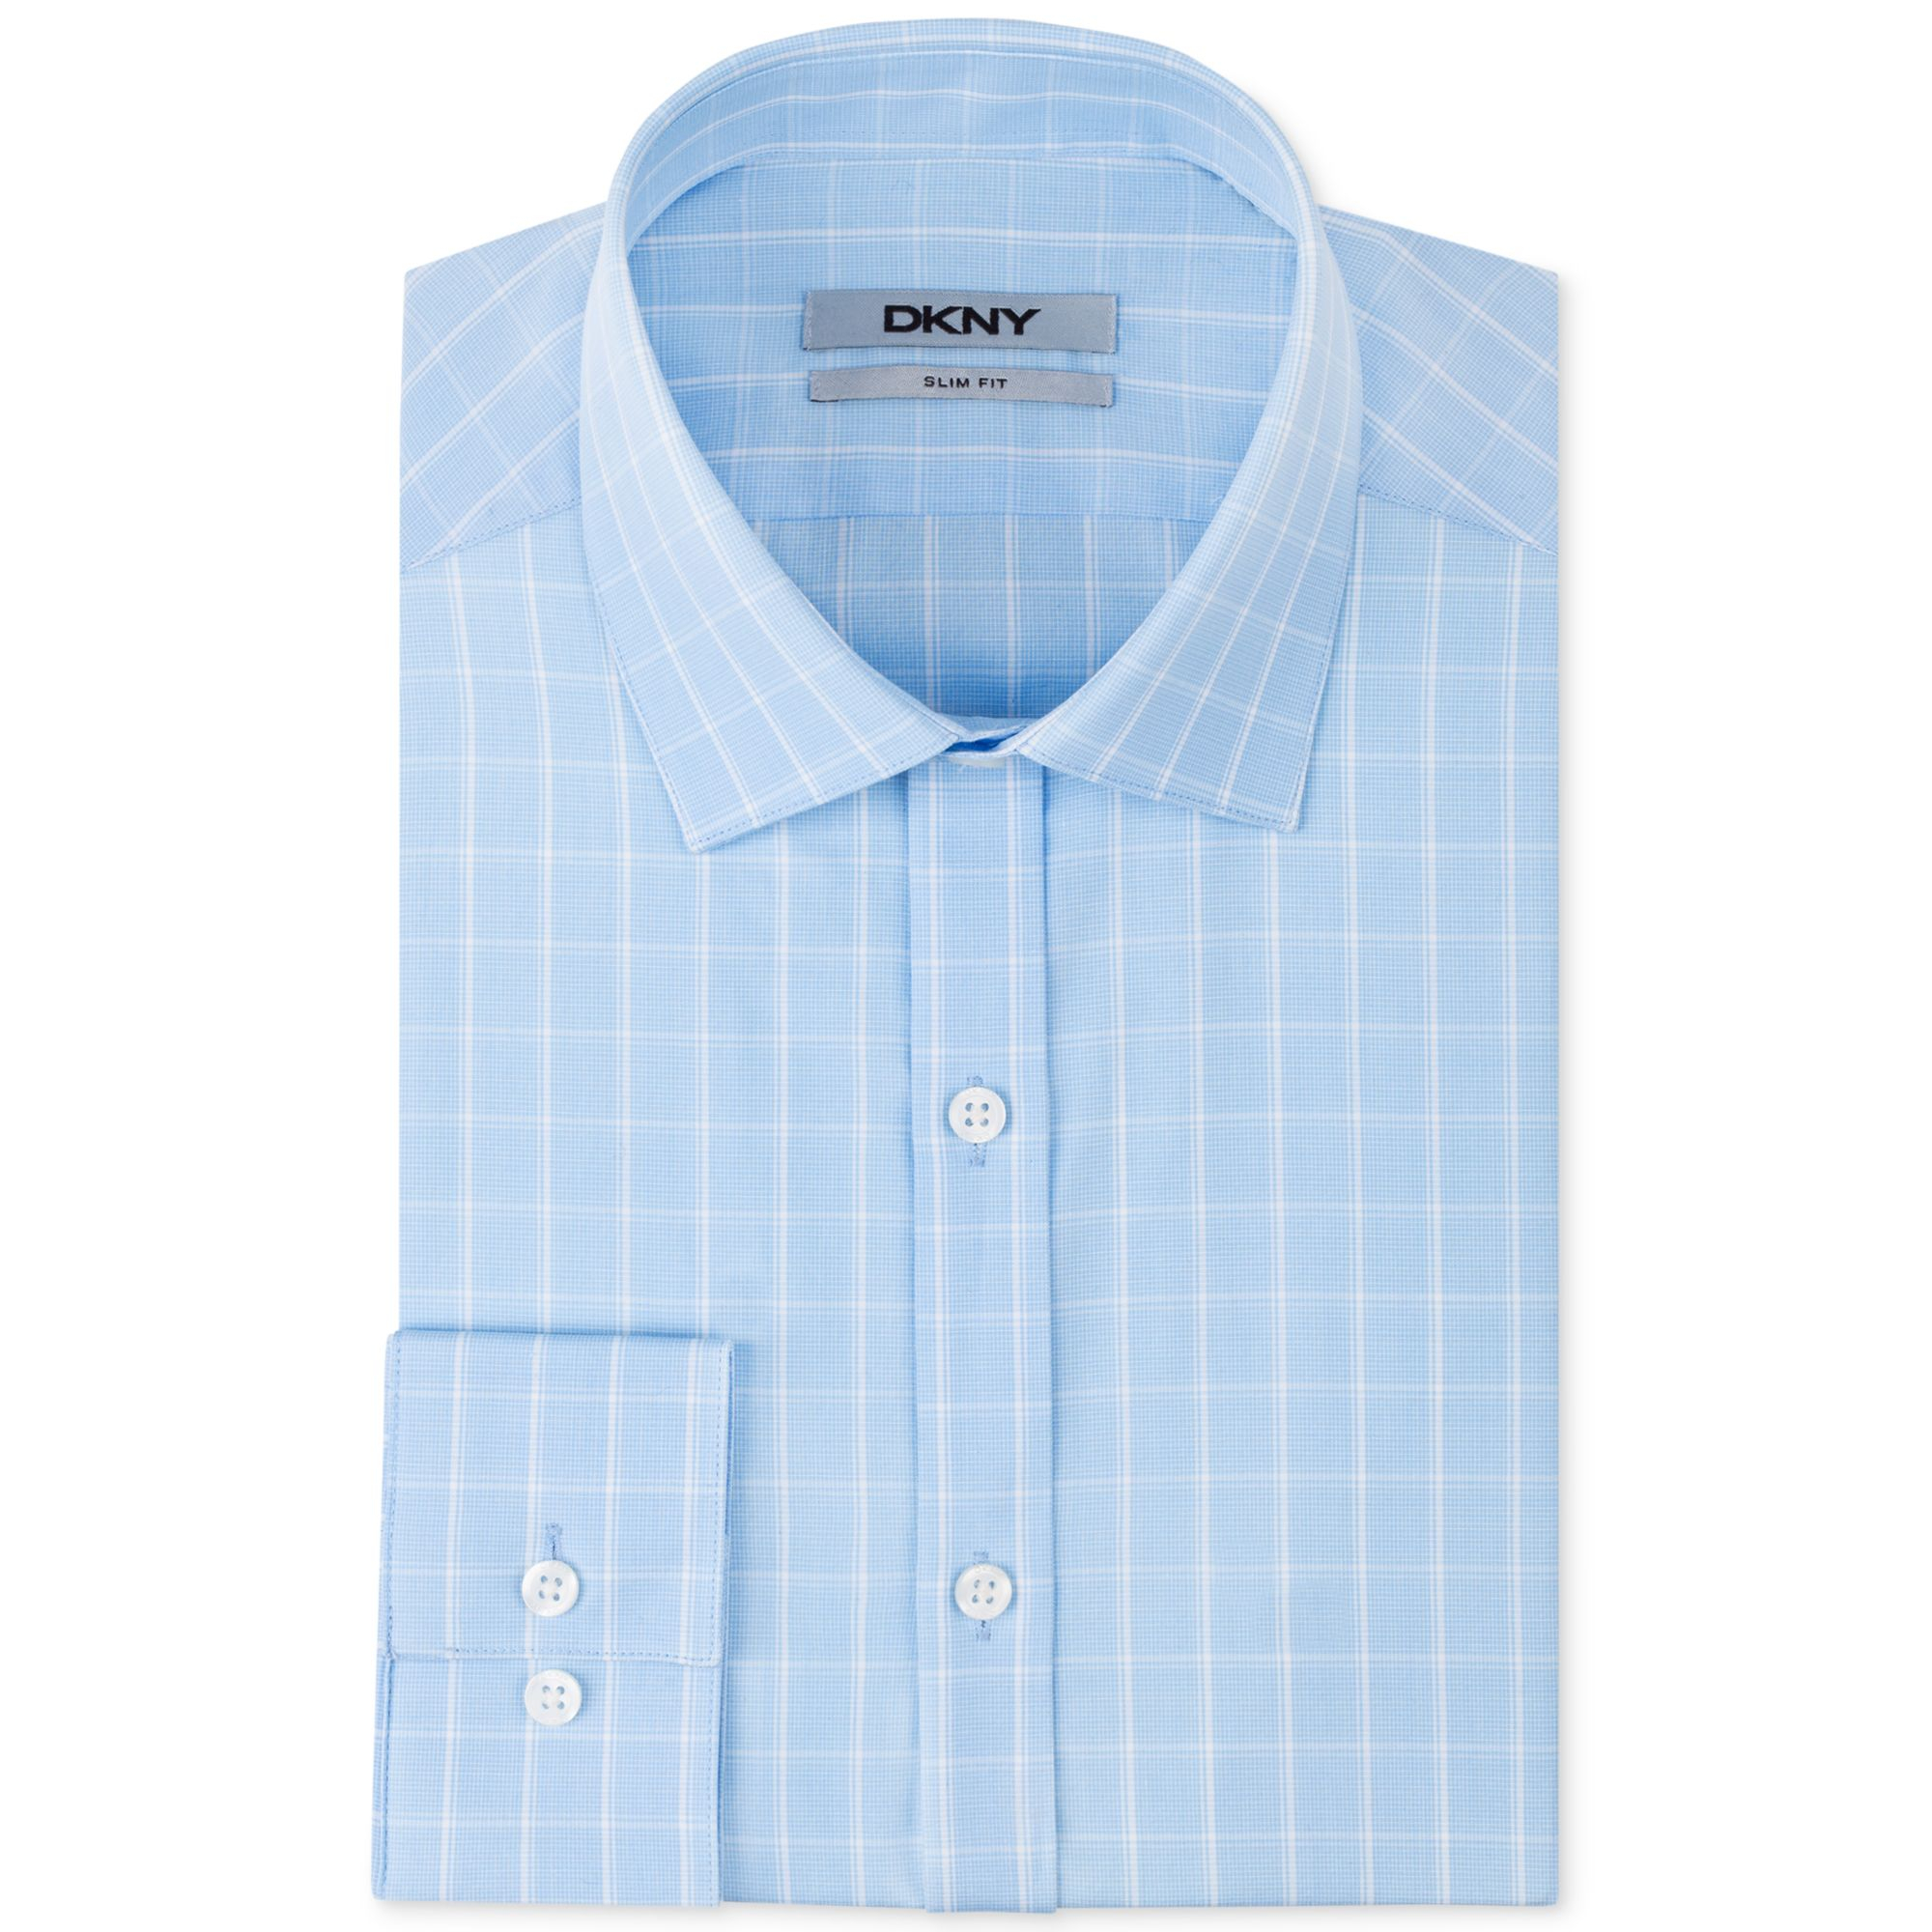 Dkny slim fit sky blue check dress shirt in blue for men for Blue check dress shirt